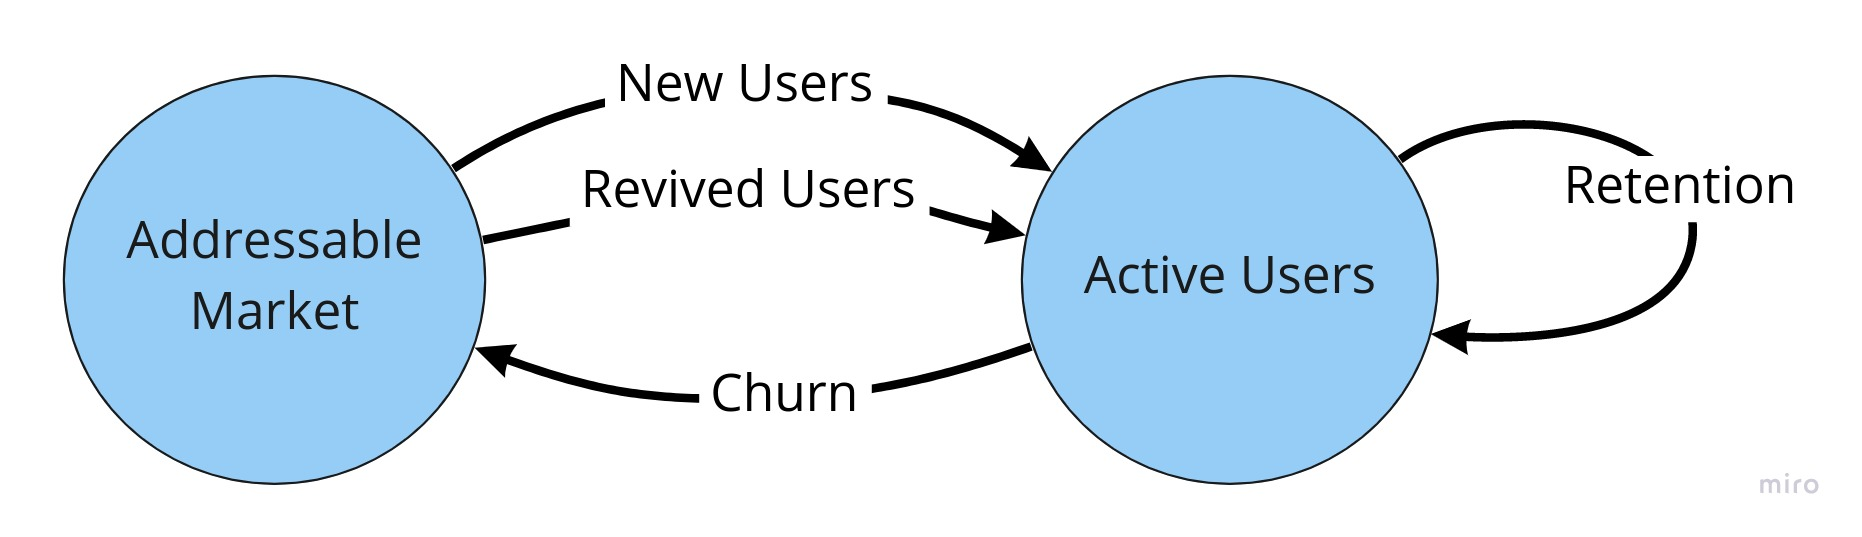 growth accounting schematic